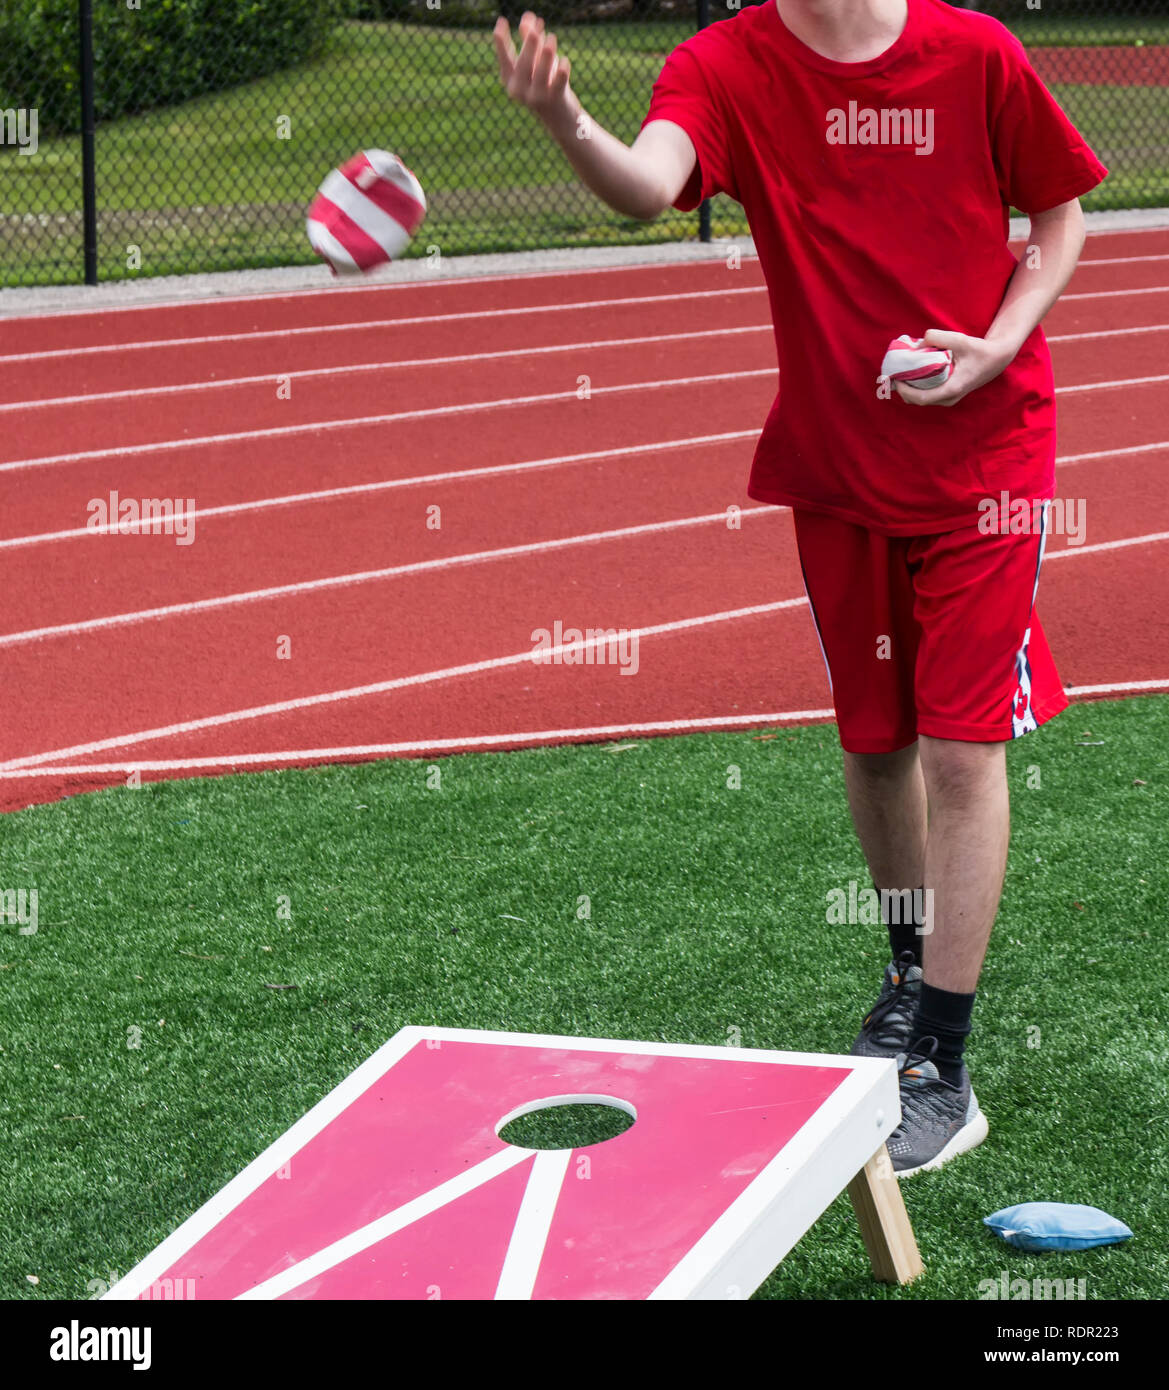 A teenage boy tosses a bean bag while playing corn hole in gym class on the turf with a red track behind him. - Stock Image